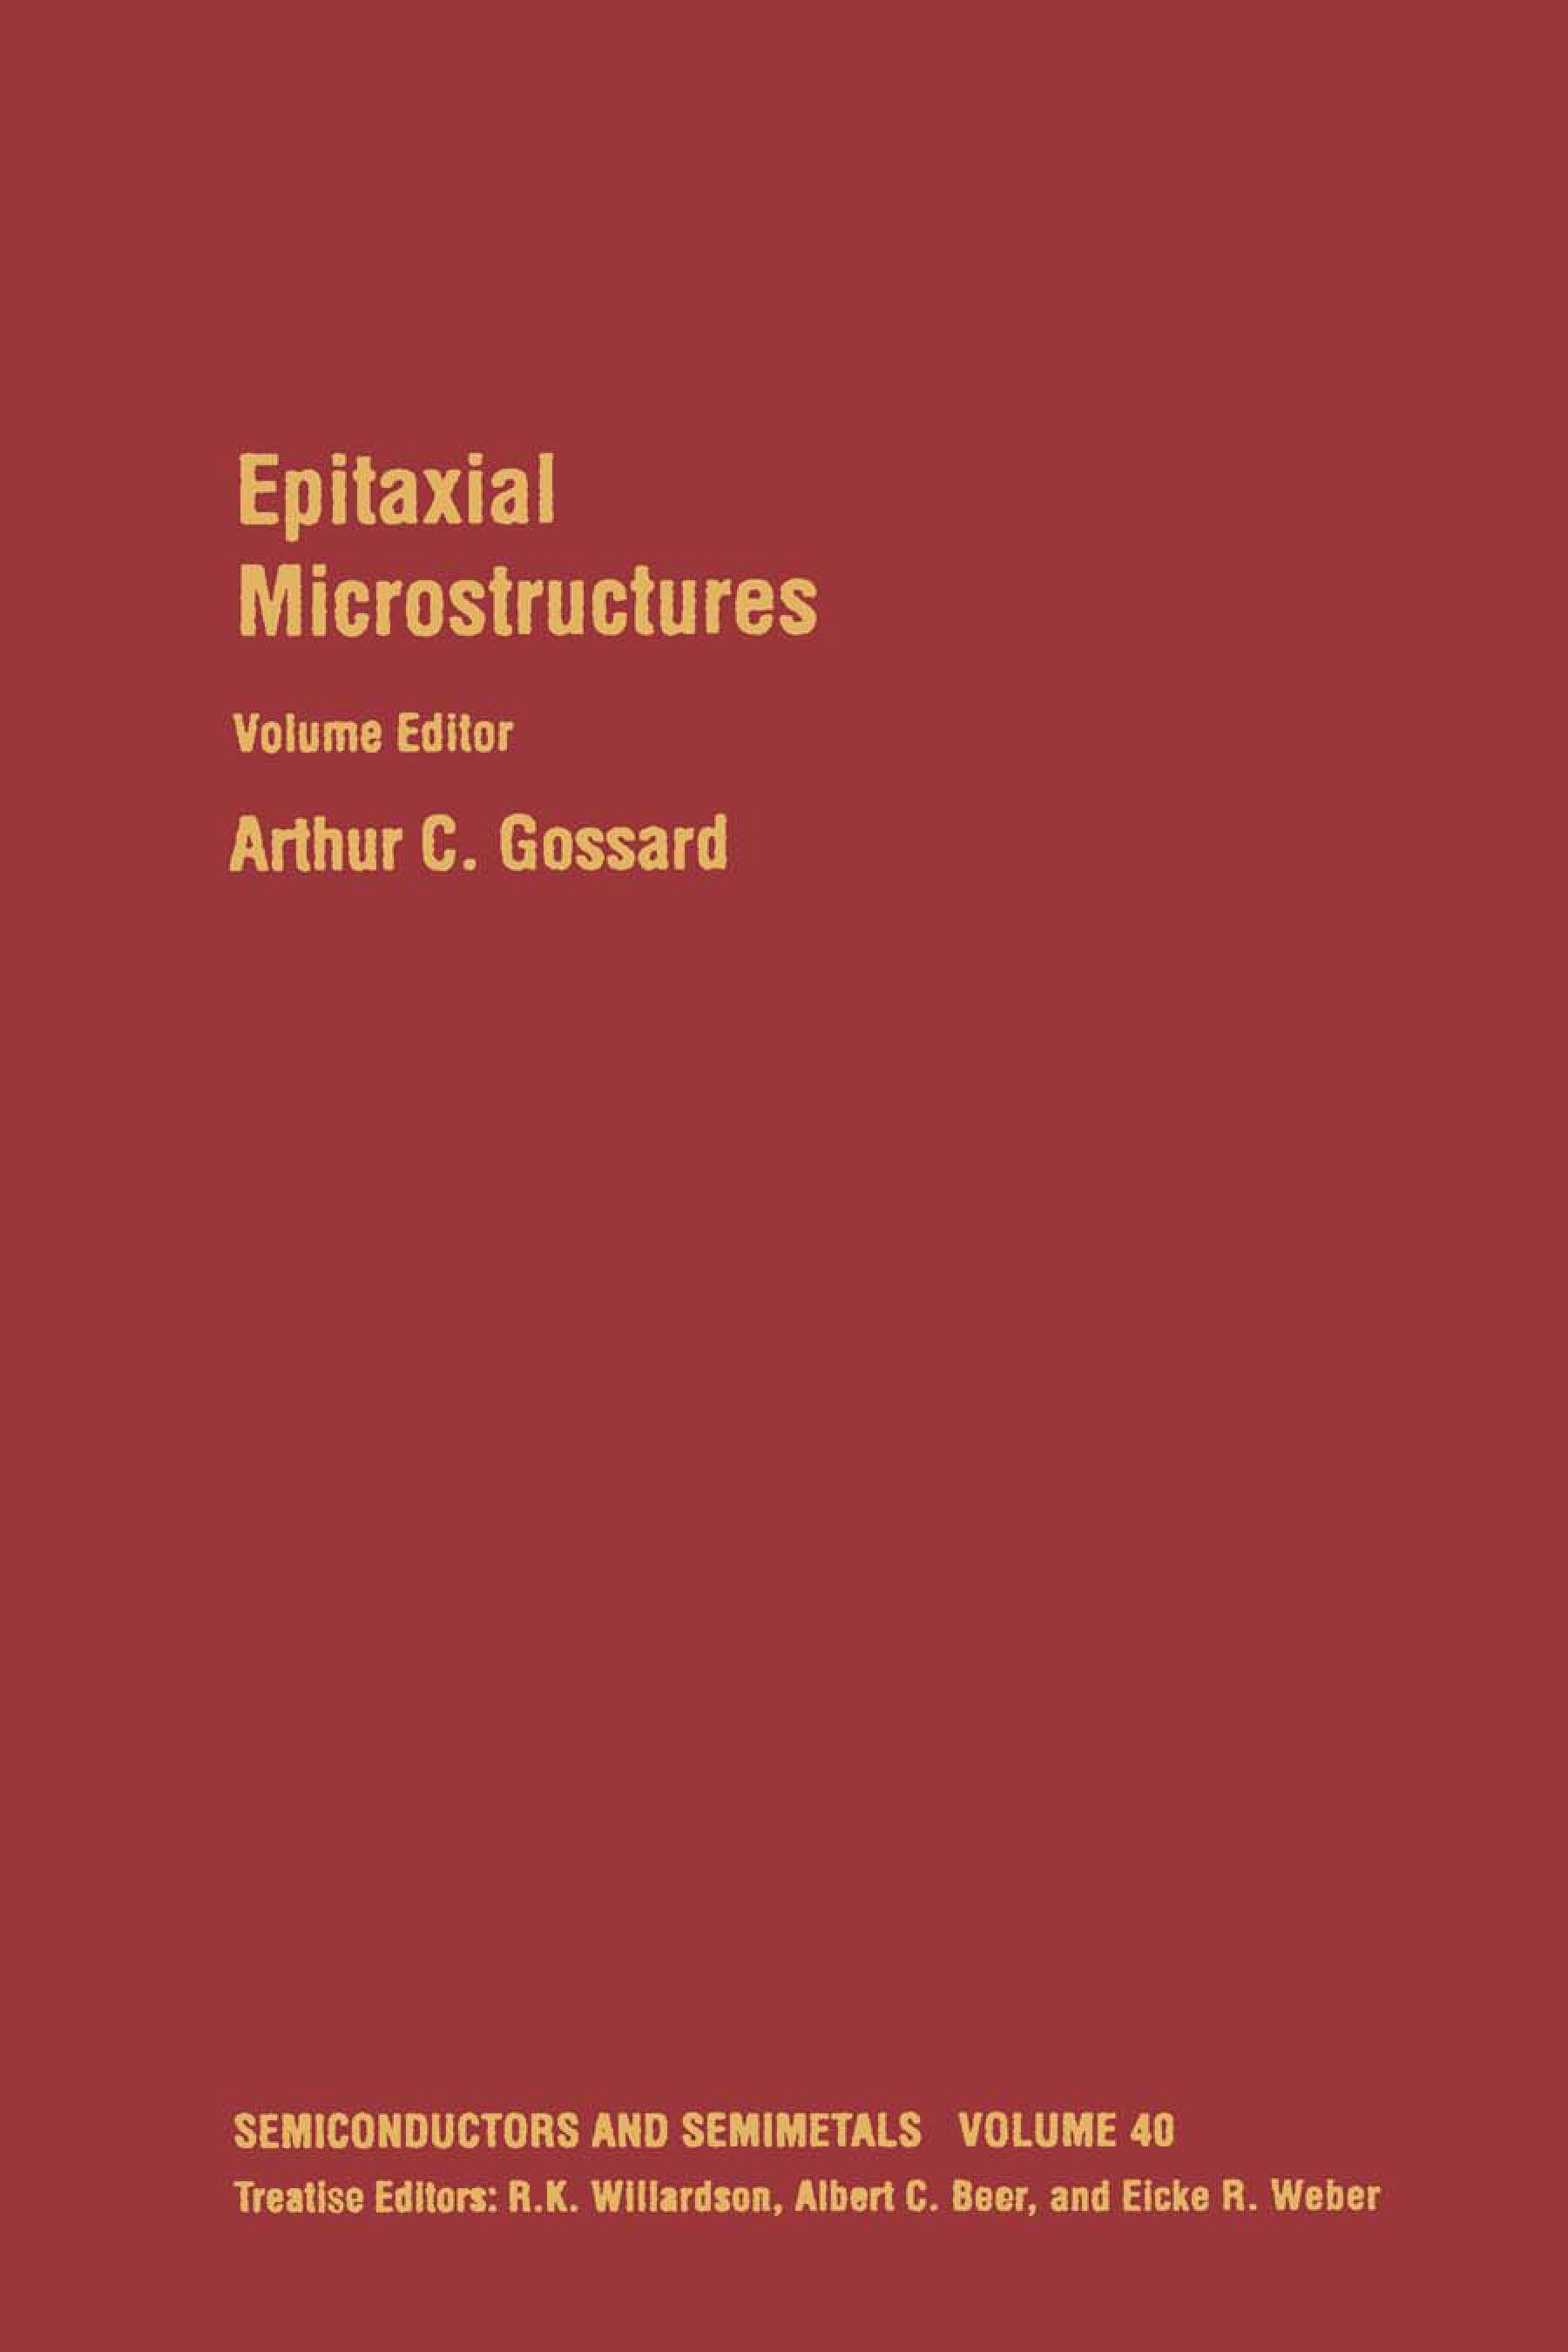 Epitaxial Microstructures: Volume 40